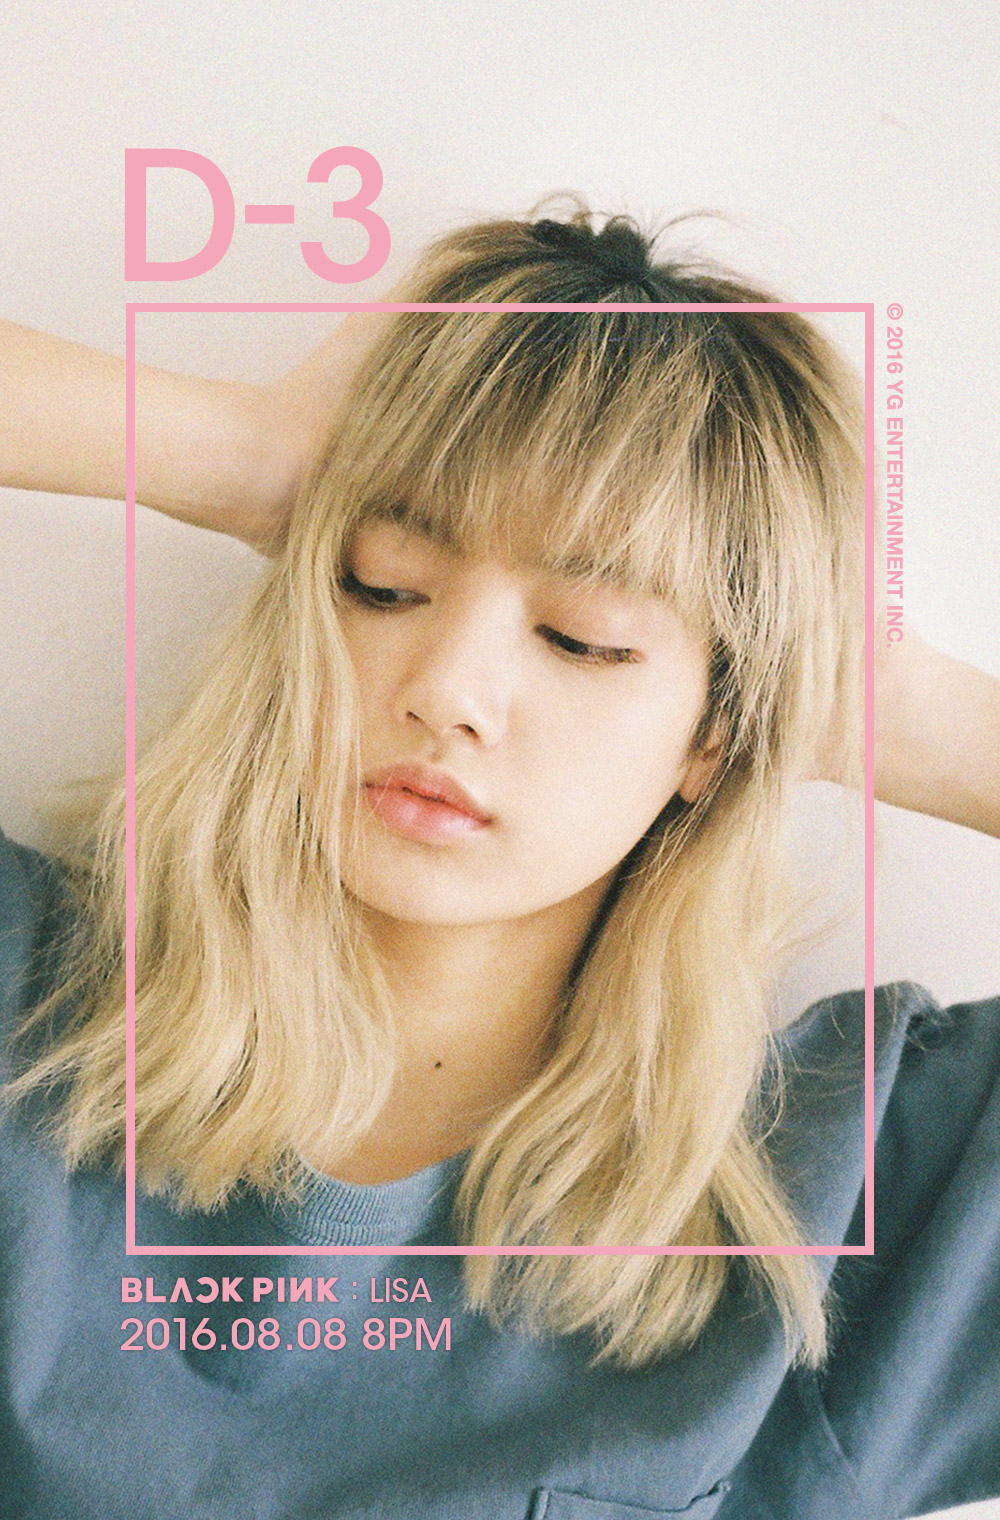 BLACKPINK Unveils Additional Teasers Featuring Lisa And Group